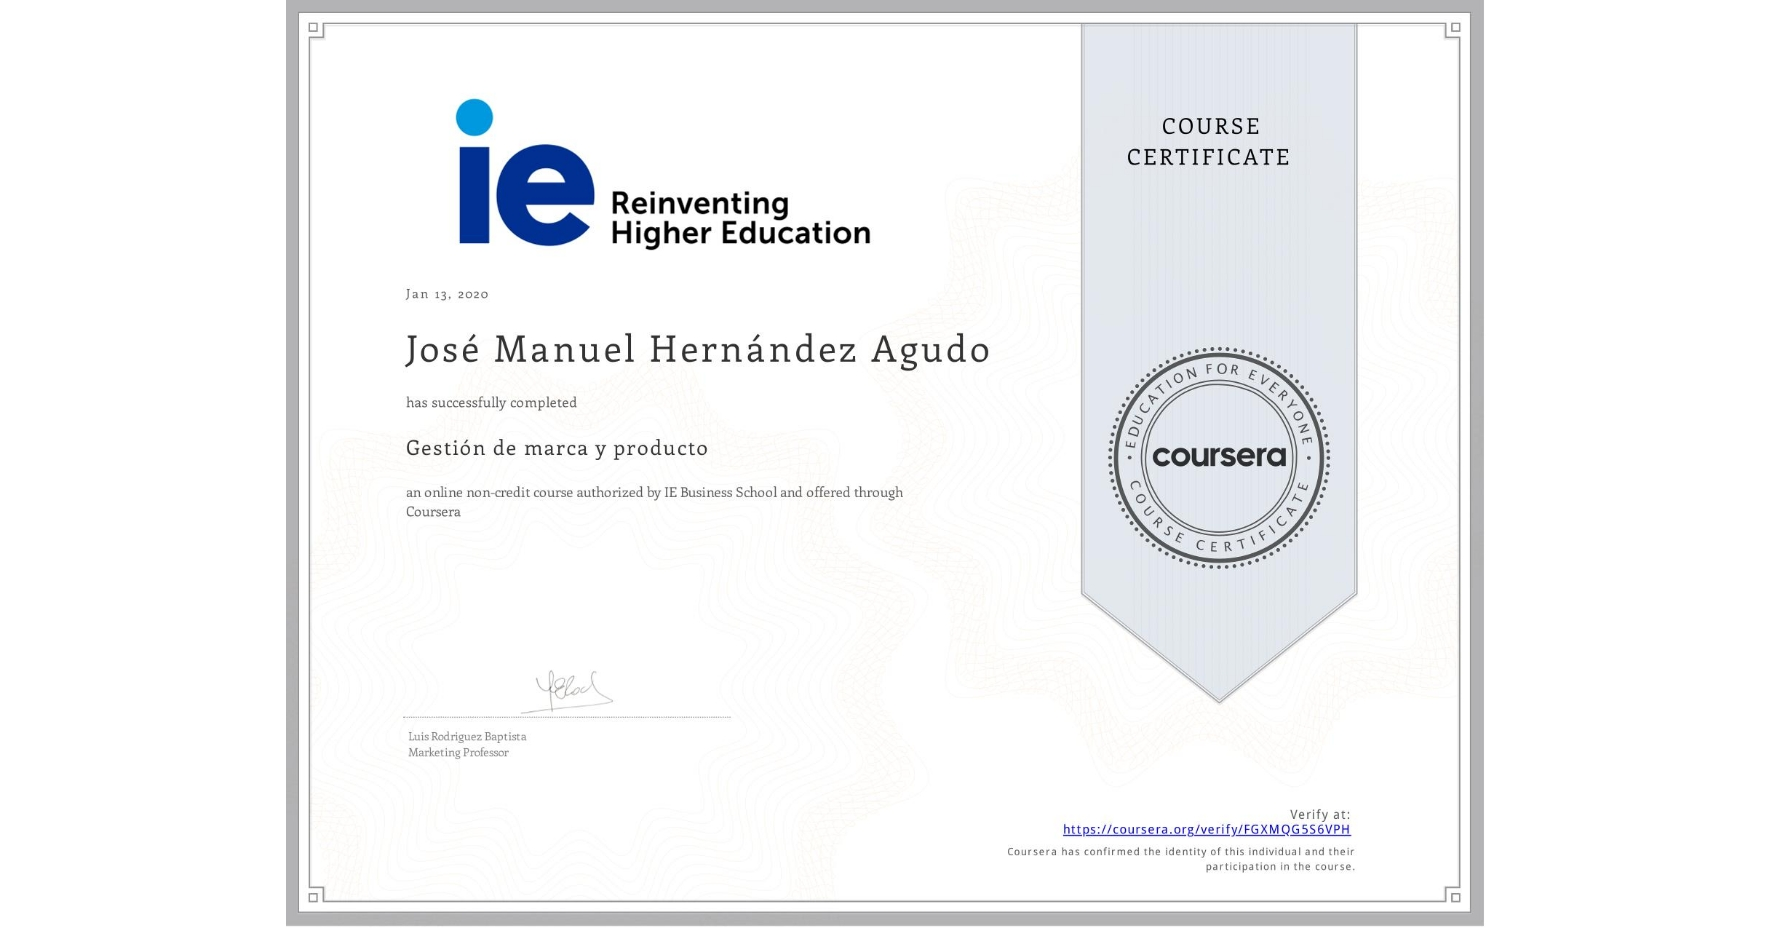 View certificate for José Manuel  Hernández Agudo, Gestión de marca y producto, an online non-credit course authorized by IE Business School and offered through Coursera